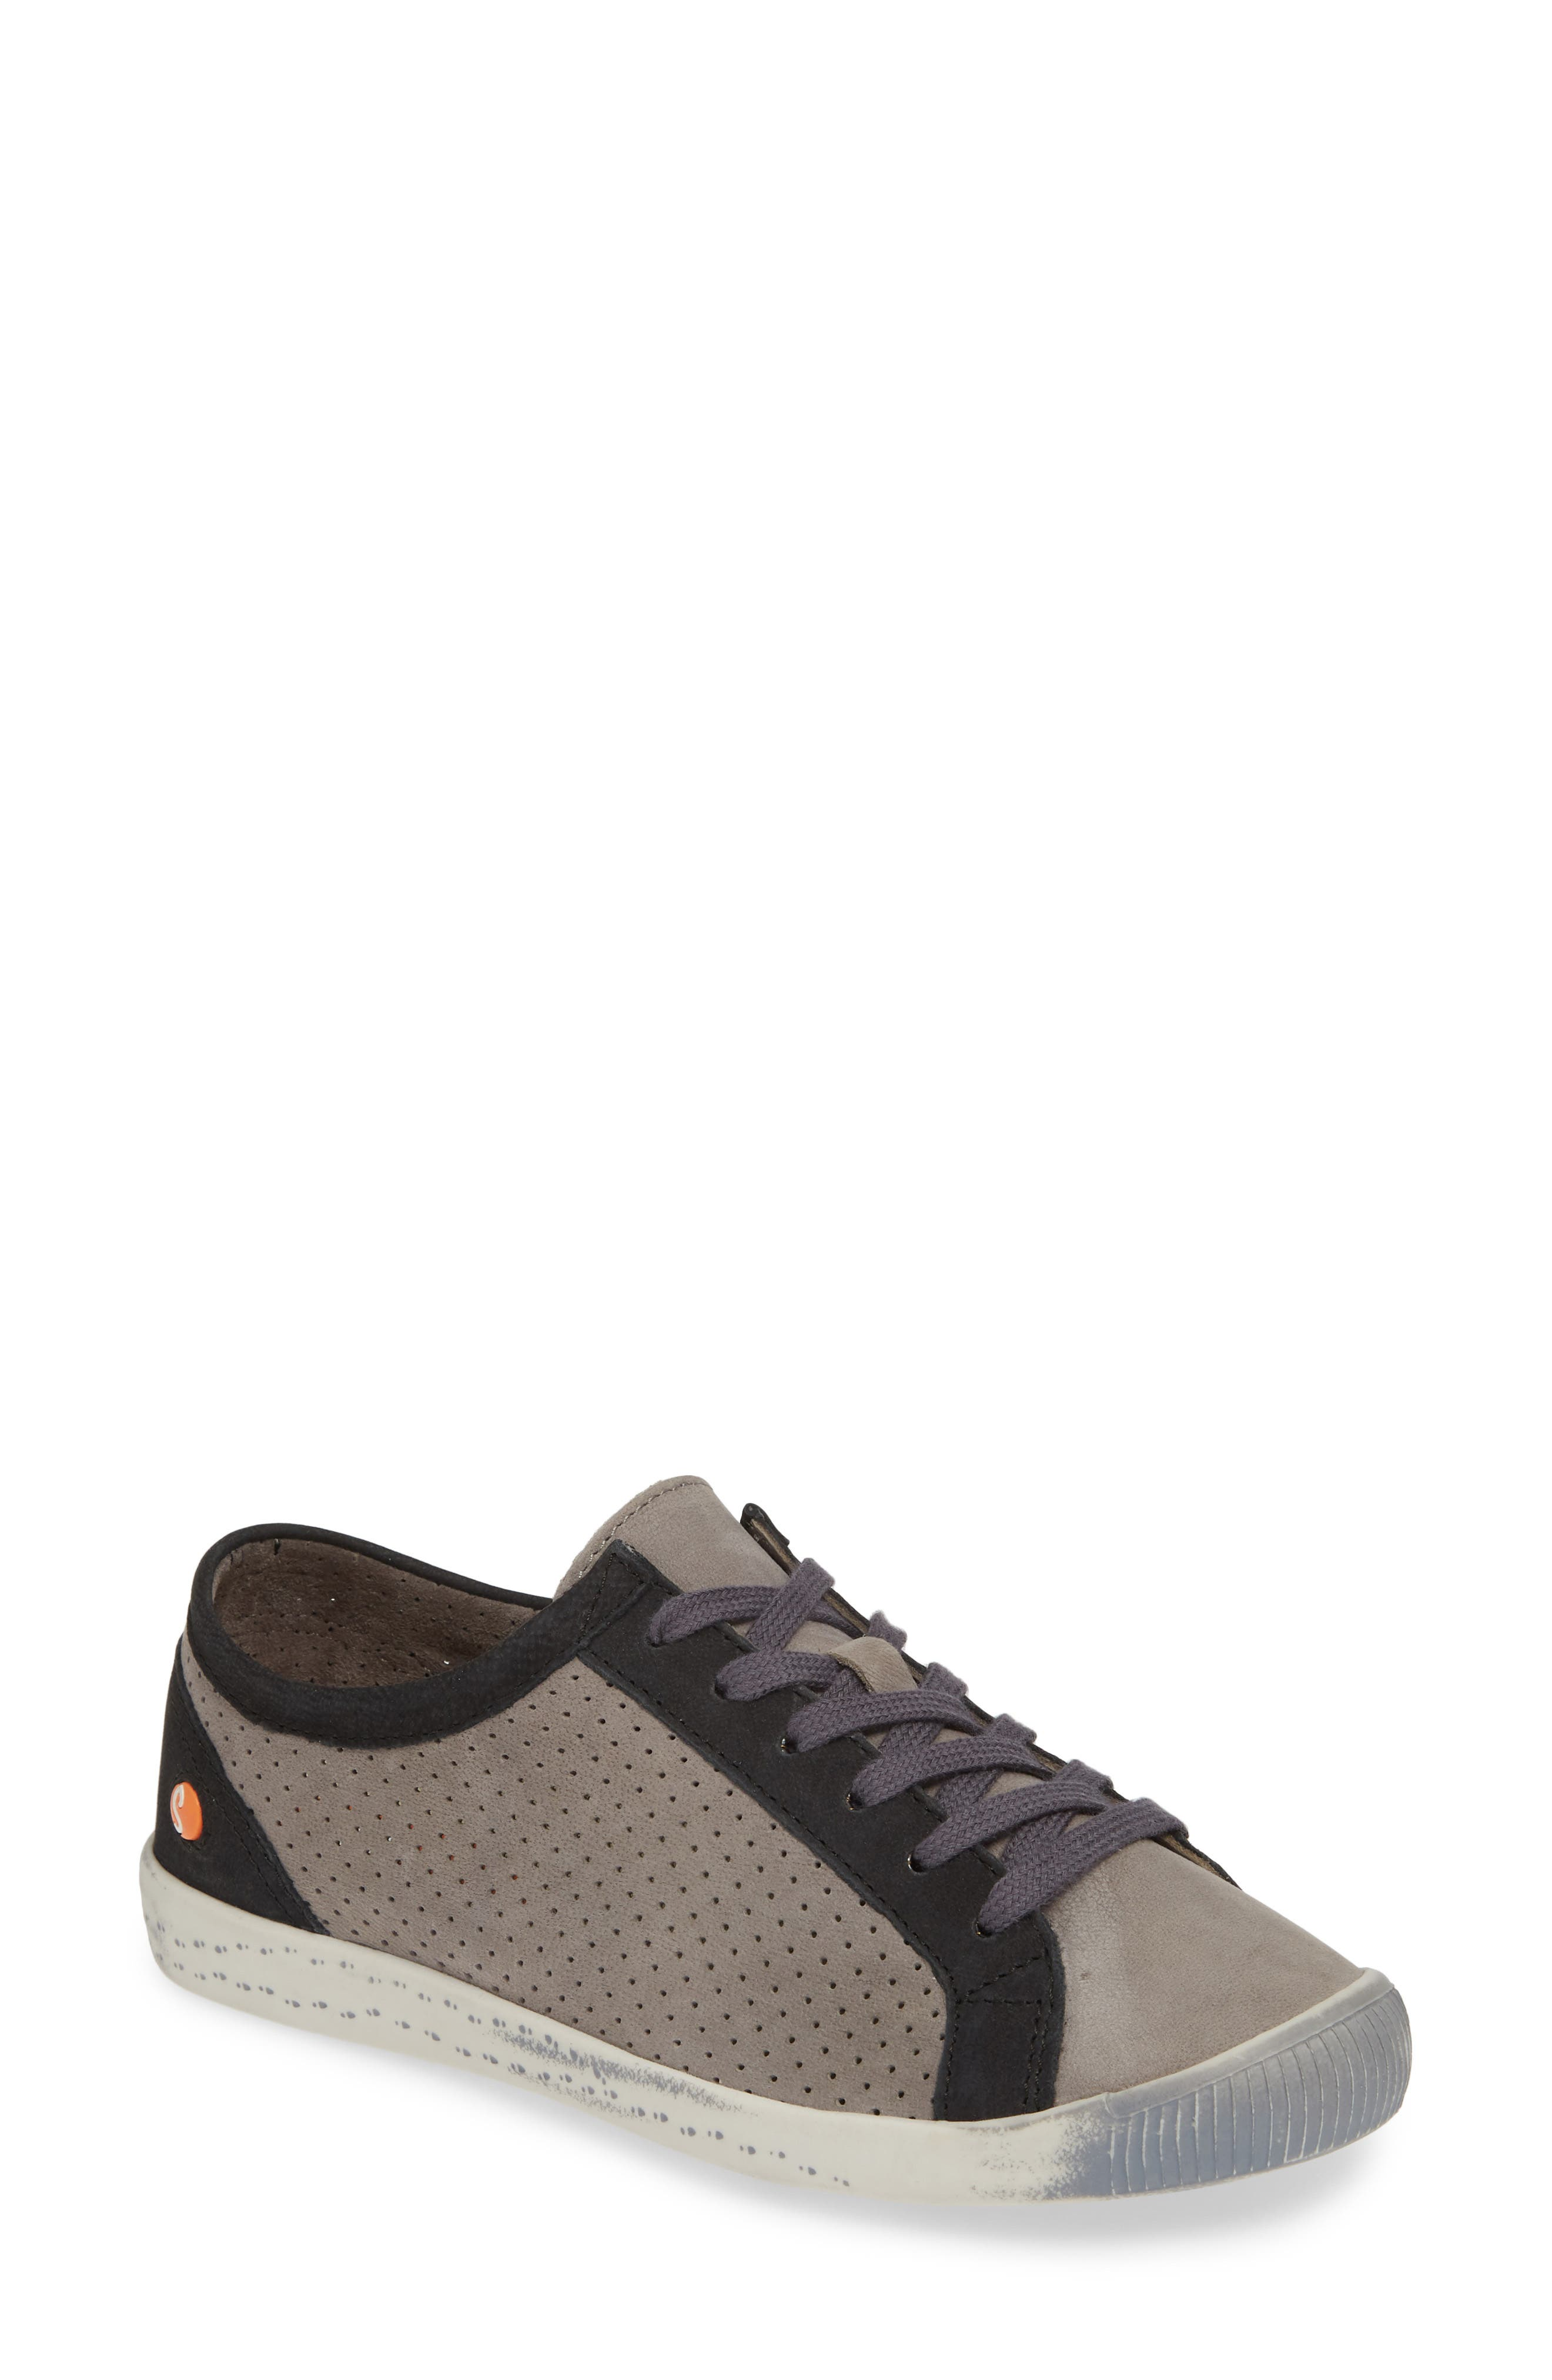 Softinos By Fly London Ica Sneaker - Grey